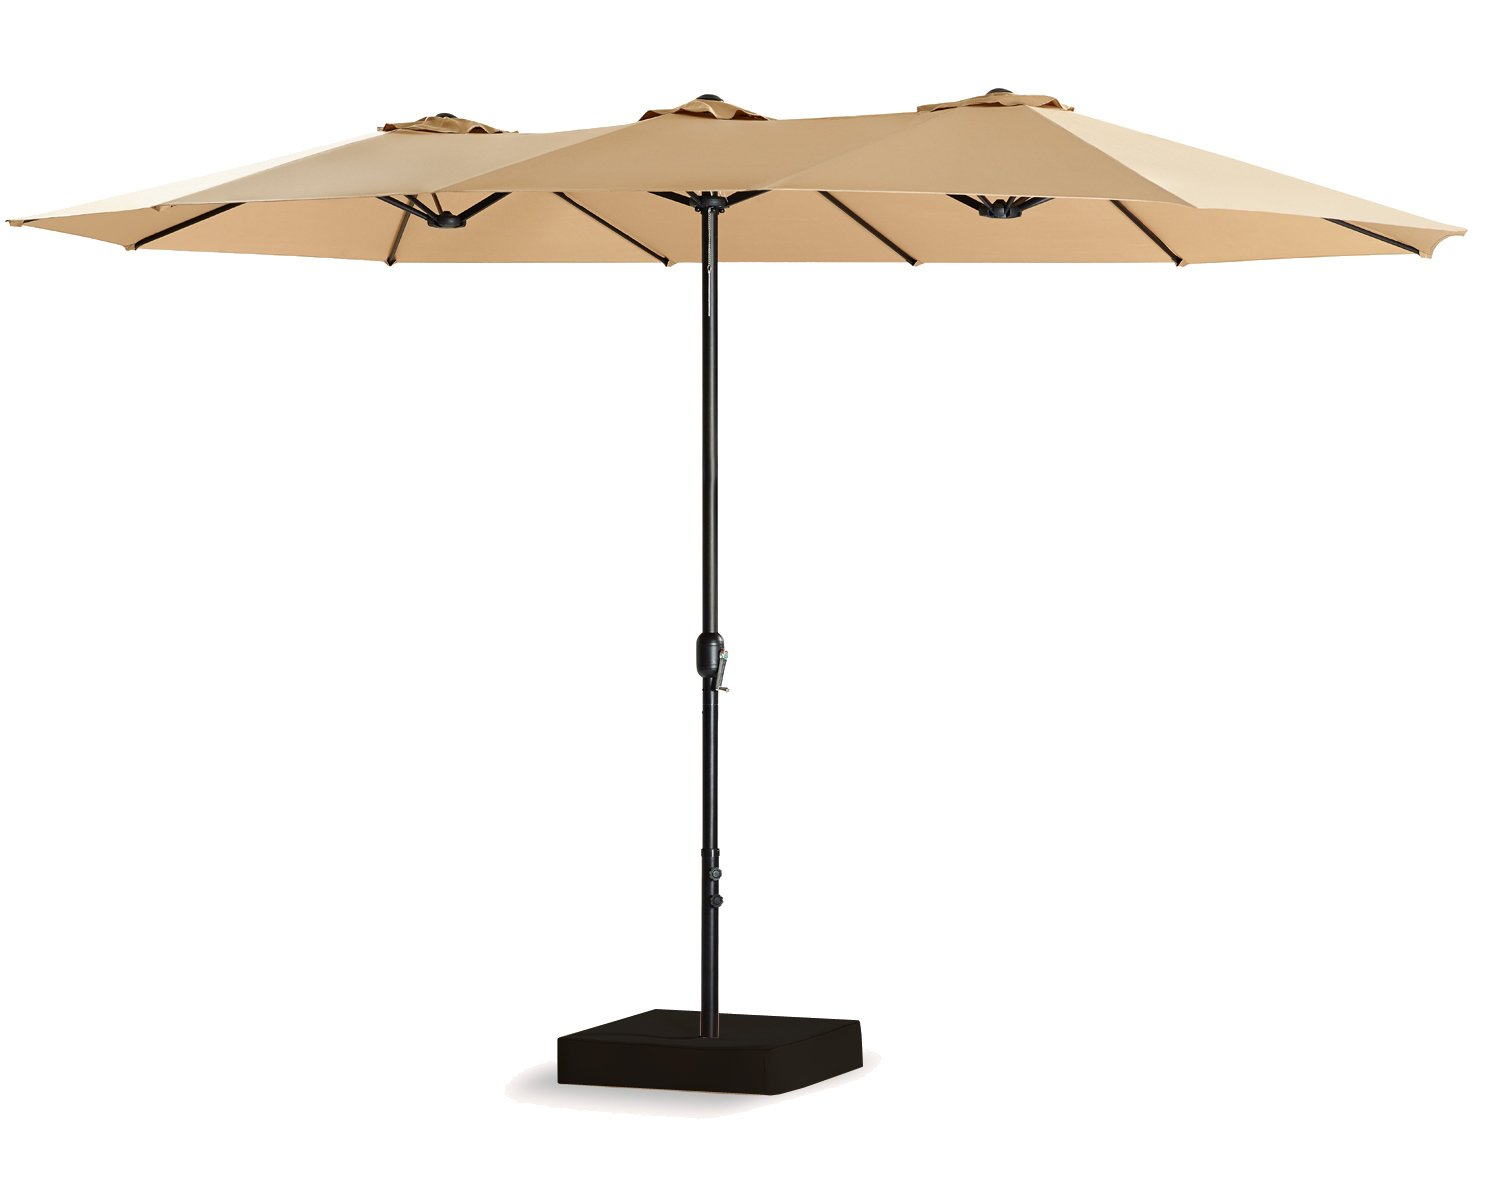 PATIO TREE 15 Ft Outdoor Umbrella Double-Sided Market Patio Umbrella with Crank, 100 Polyester, Base Included Beige